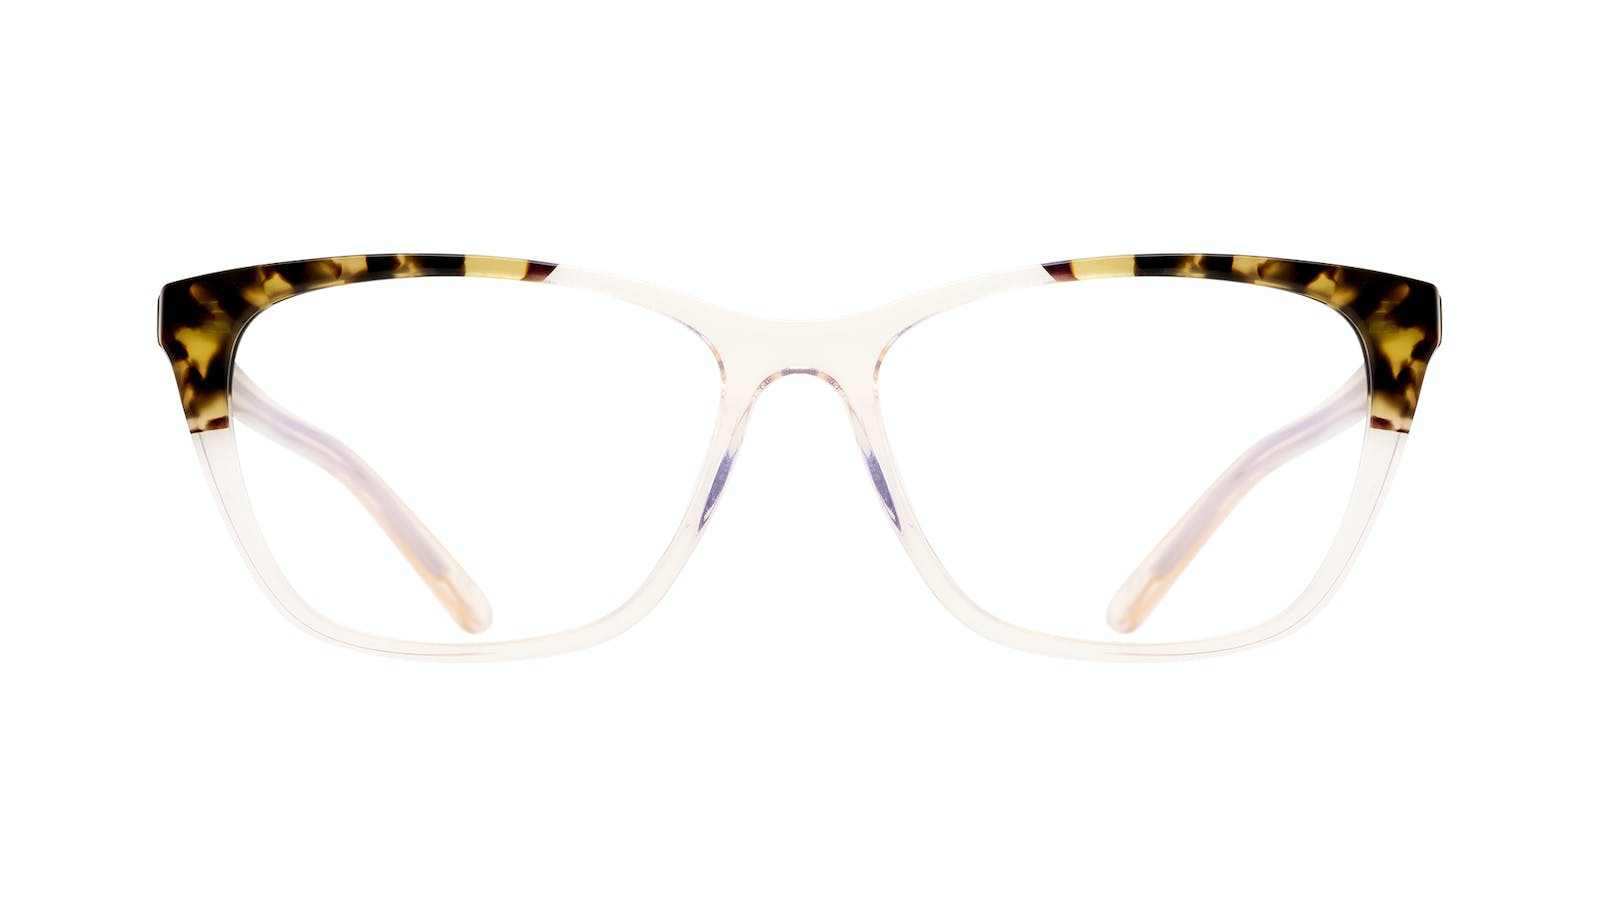 72e7adc54ee9 Myrtle Petite - Sepia Kiss.  149.  74. Affordable Fashion Glasses Cat Eye  Rectangle Eyeglasses Women Myrtle Blond Tortoise